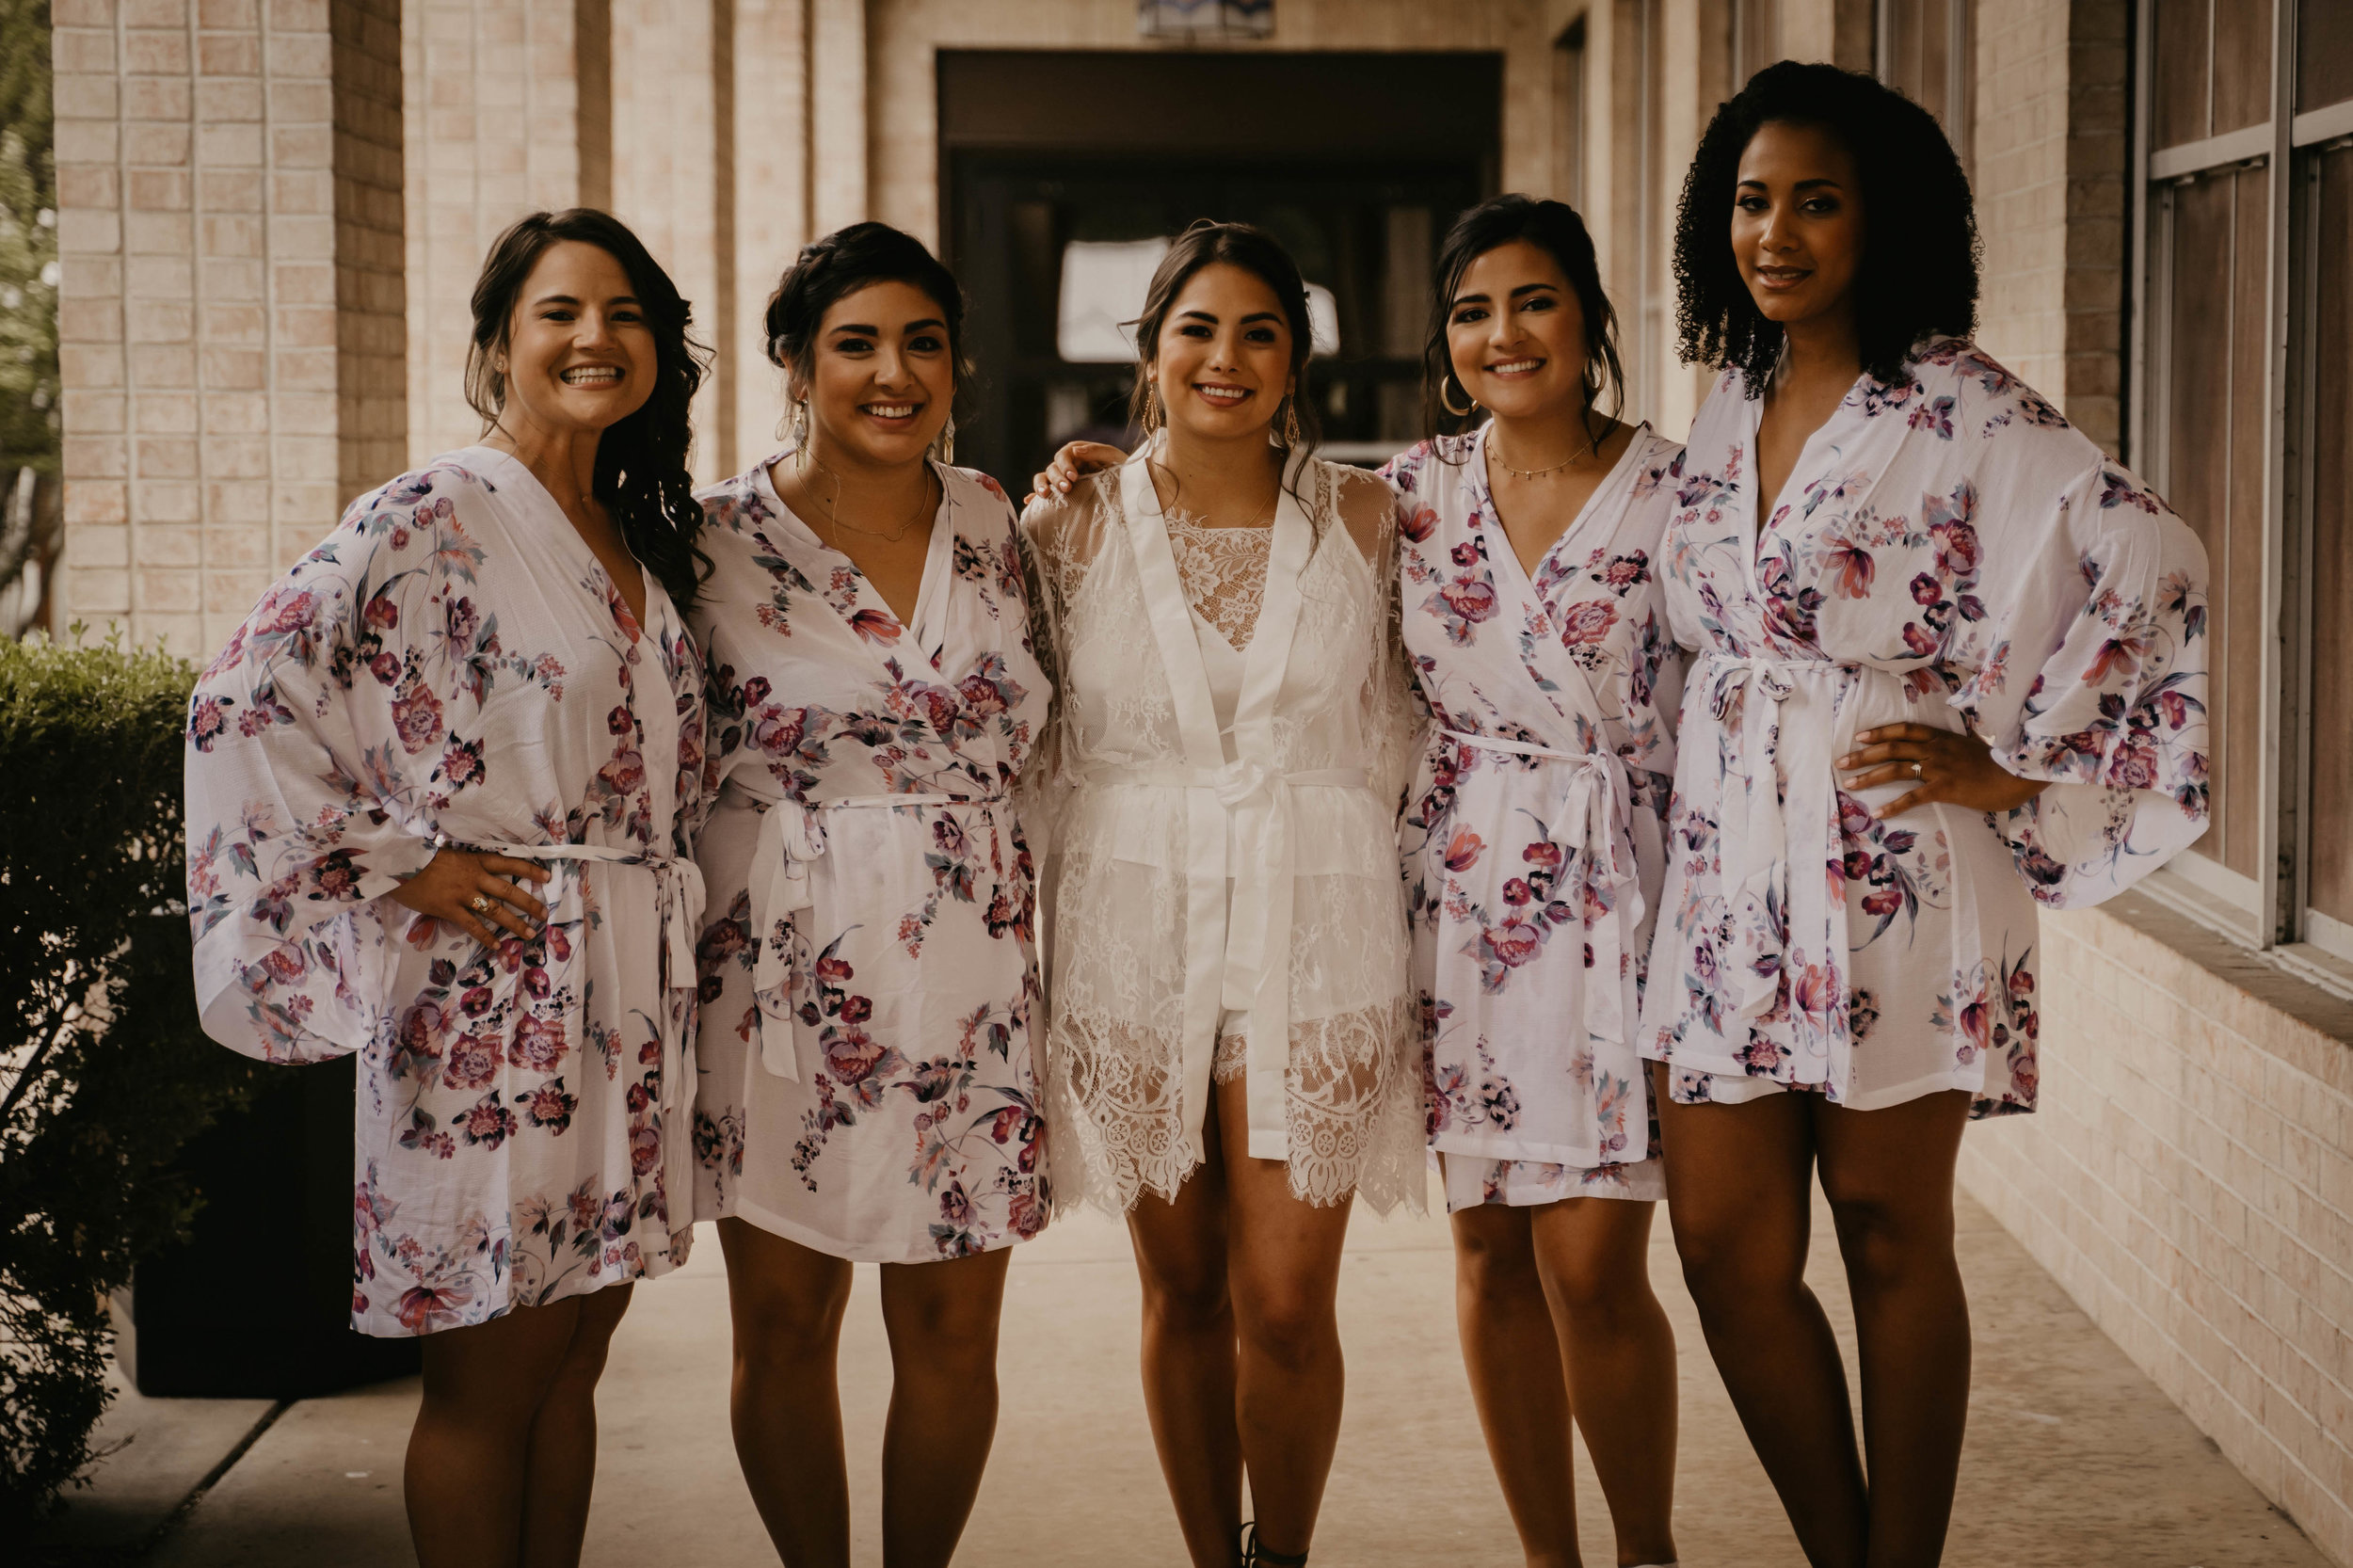 austin-wedding-videographer (286 of 999).jpg